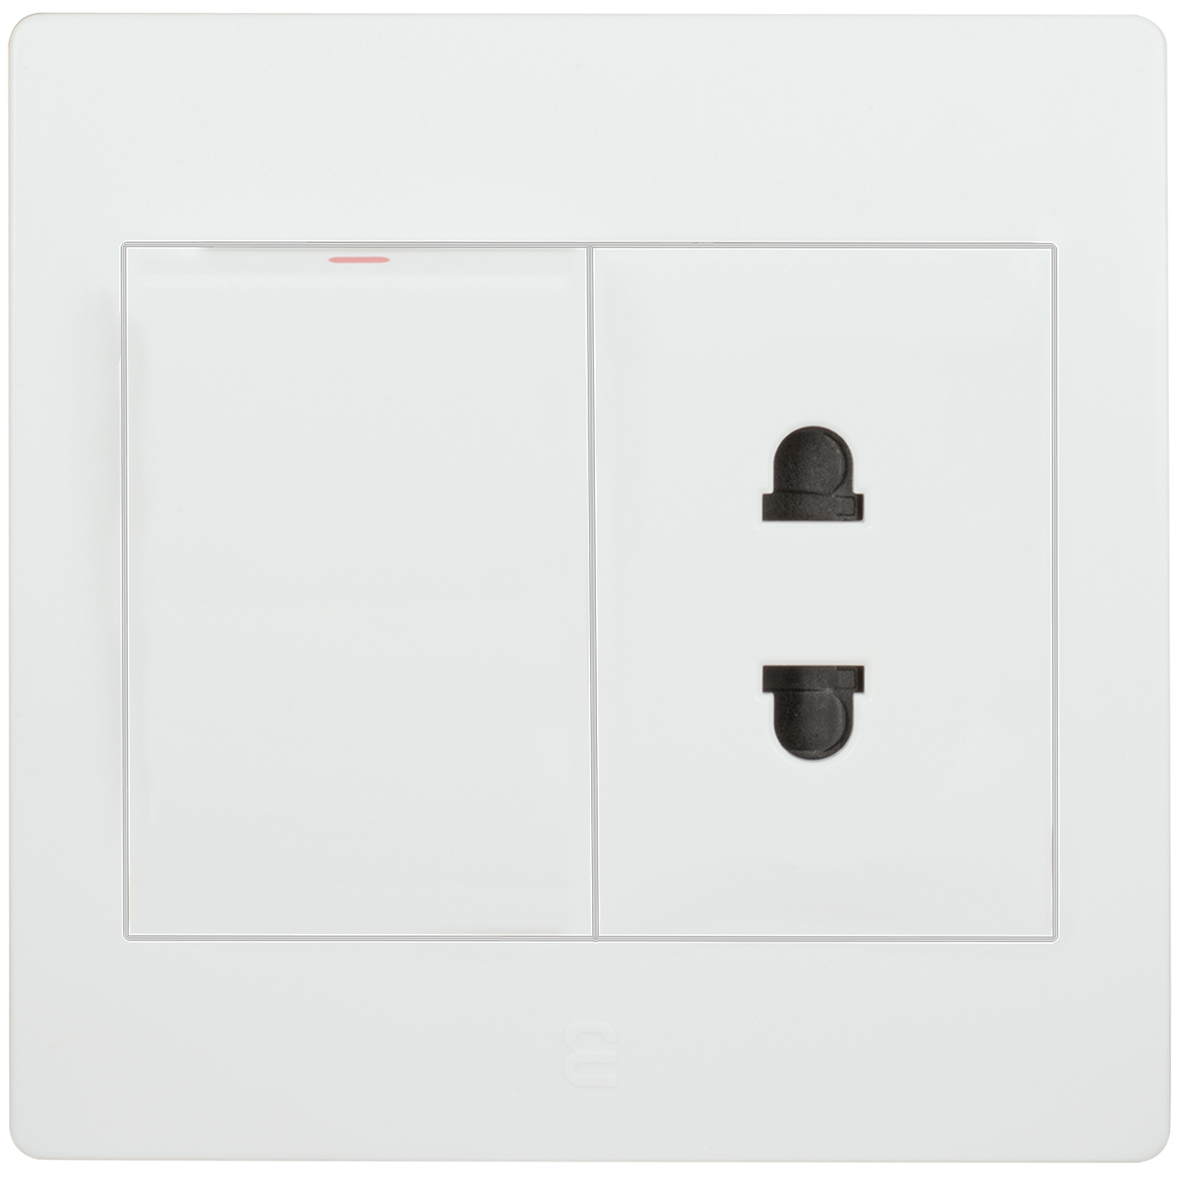 Socket euro-american type with switch